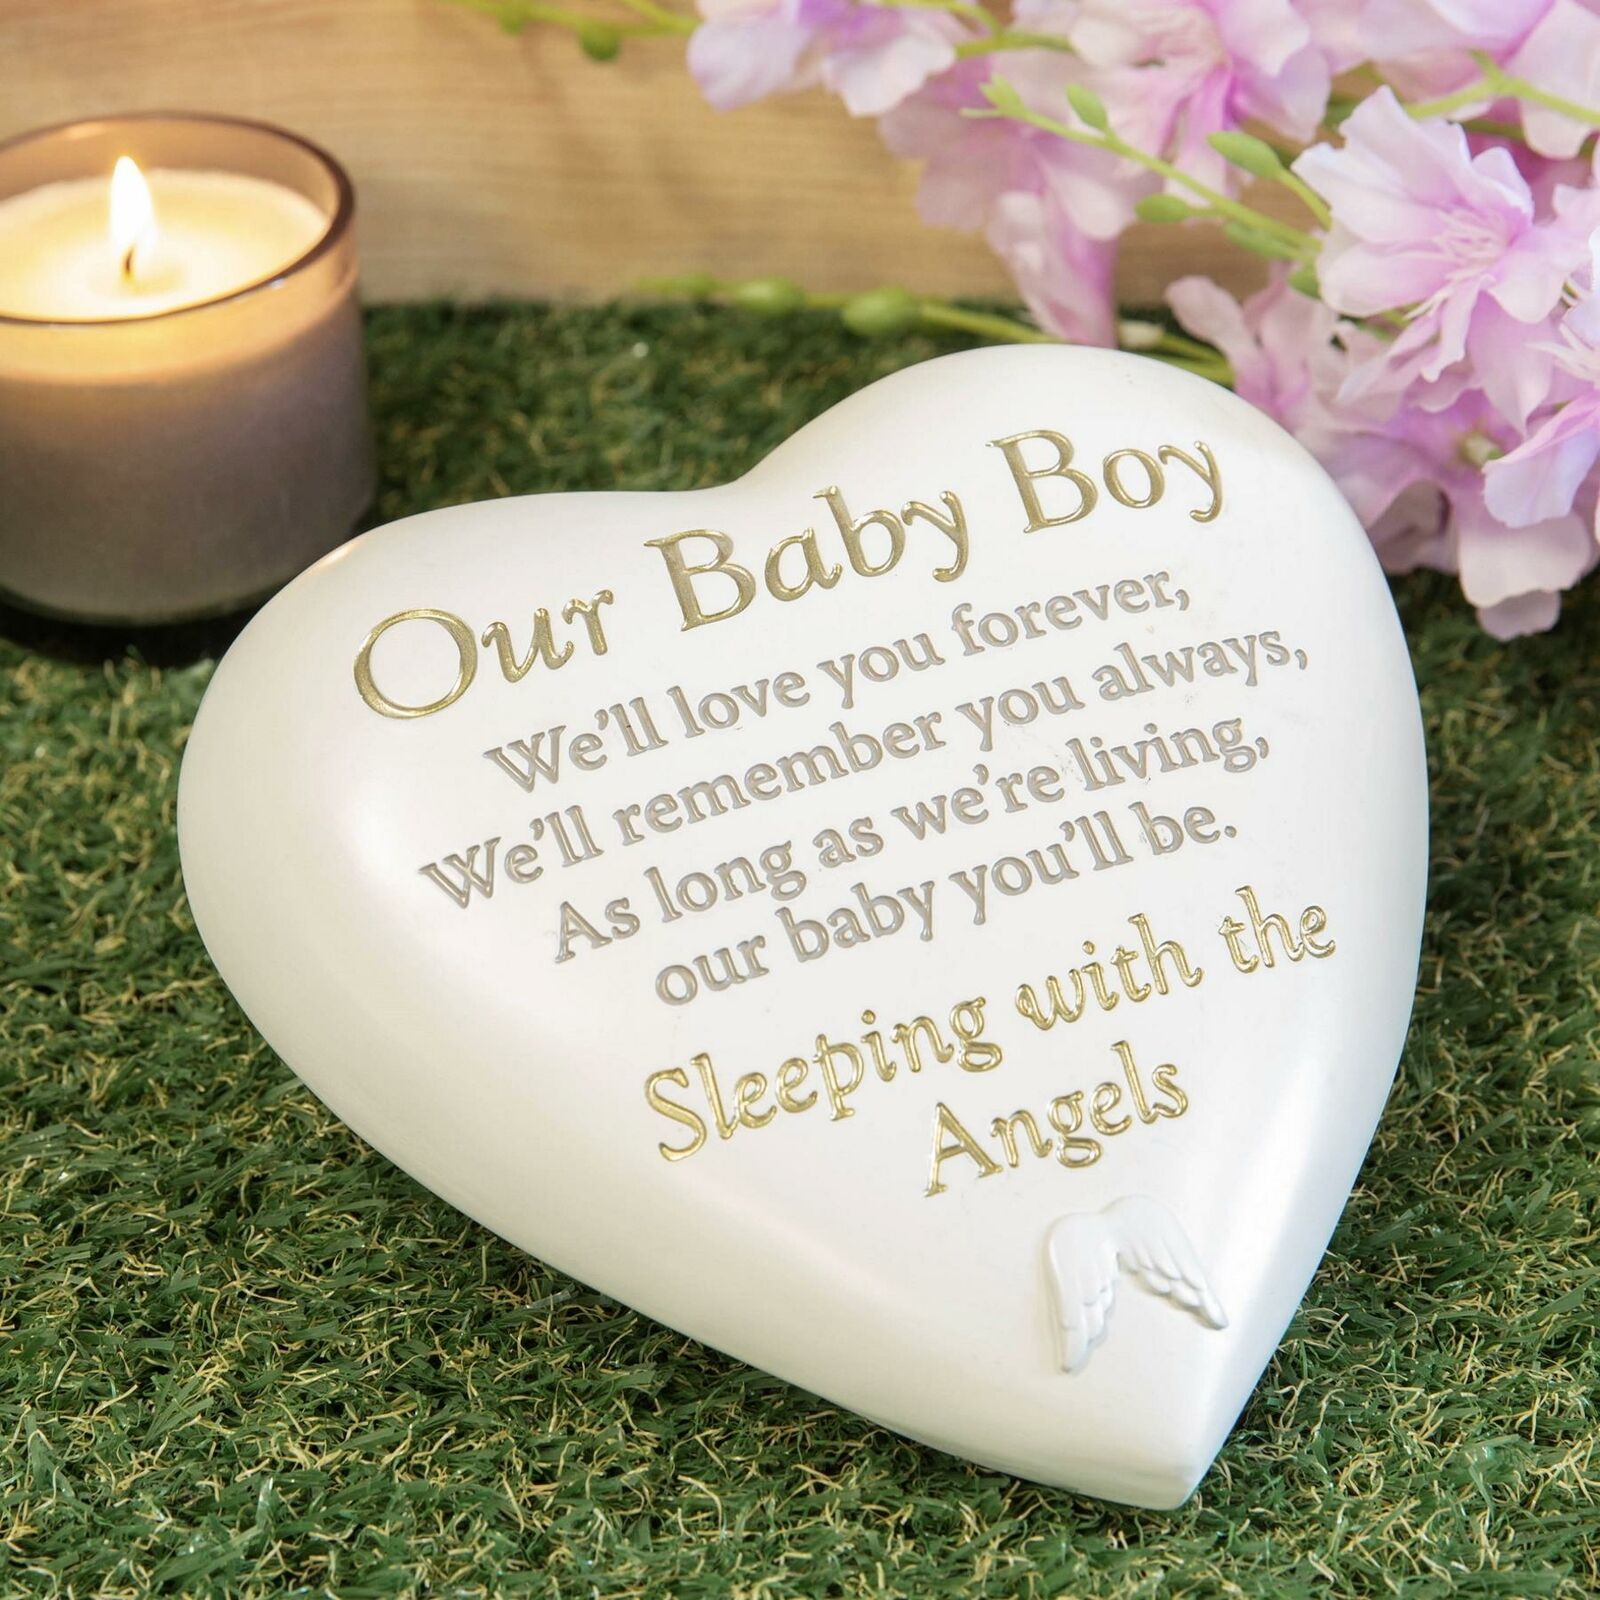 Baby Boy Heart Stone grave